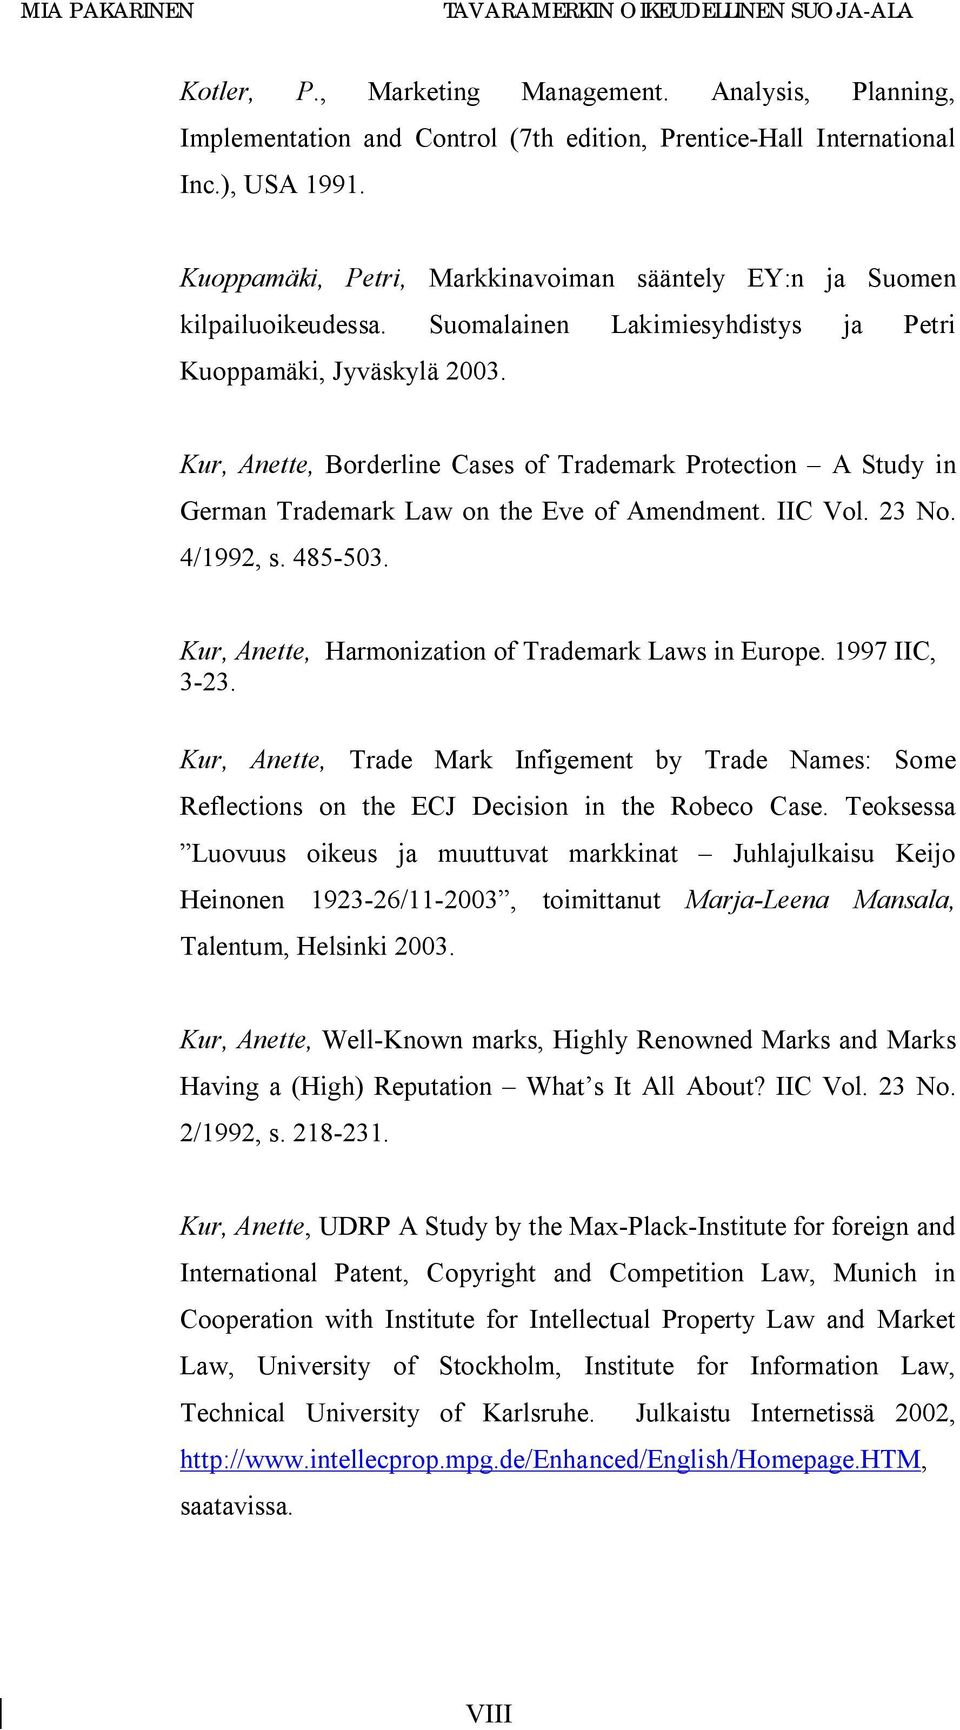 Kur, Anette, Borderline Cases of Trademark Protection A Study in German Trademark Law on the Eve of Amendment. IIC Vol. 23 No. 4/1992, s. 485-503.